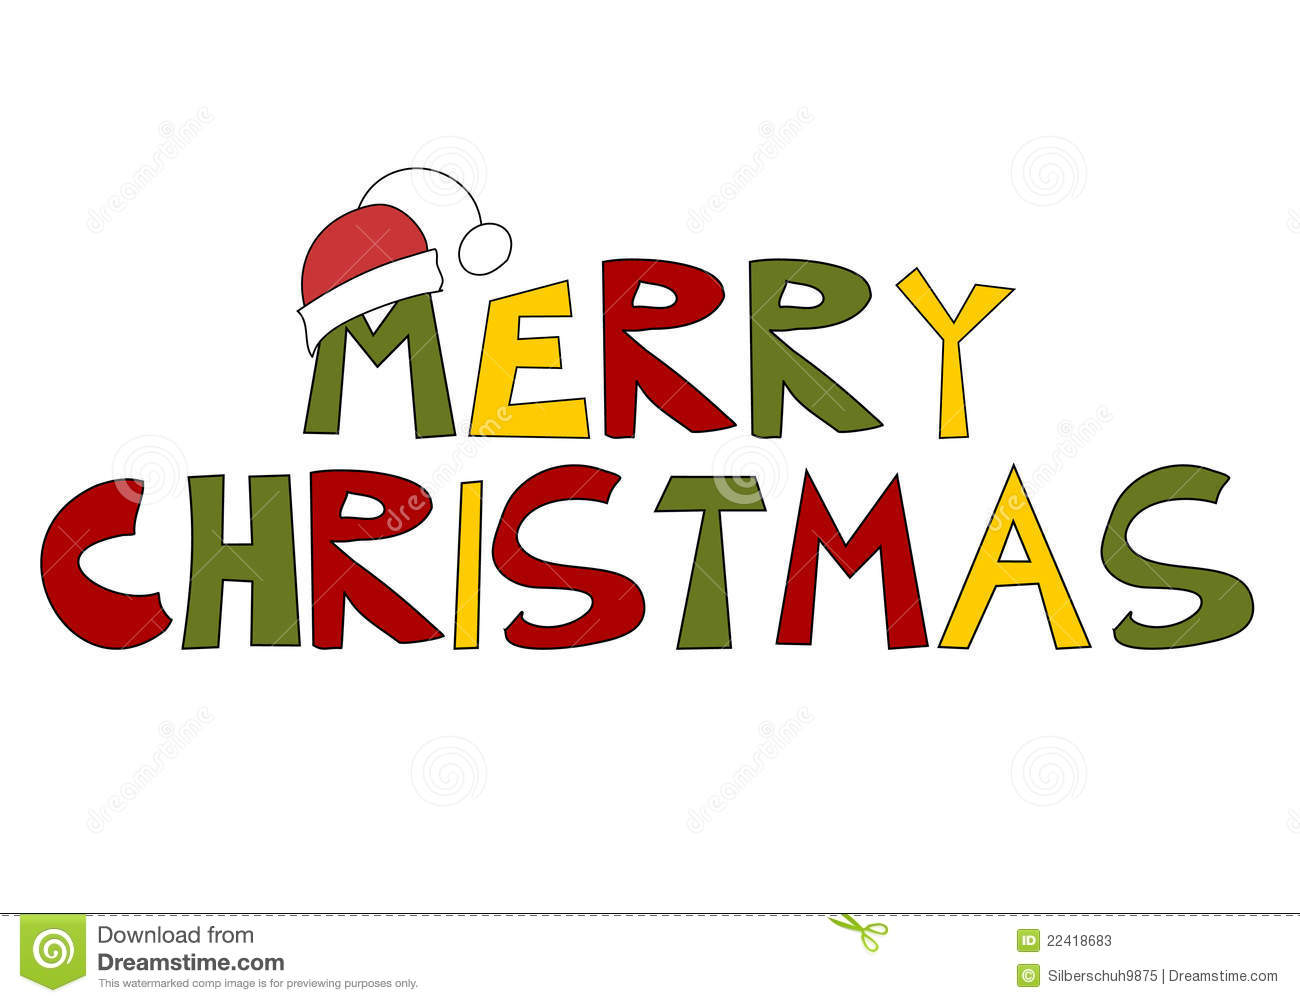 Text clipart merry christmas Text Designs (15) Merry Happy